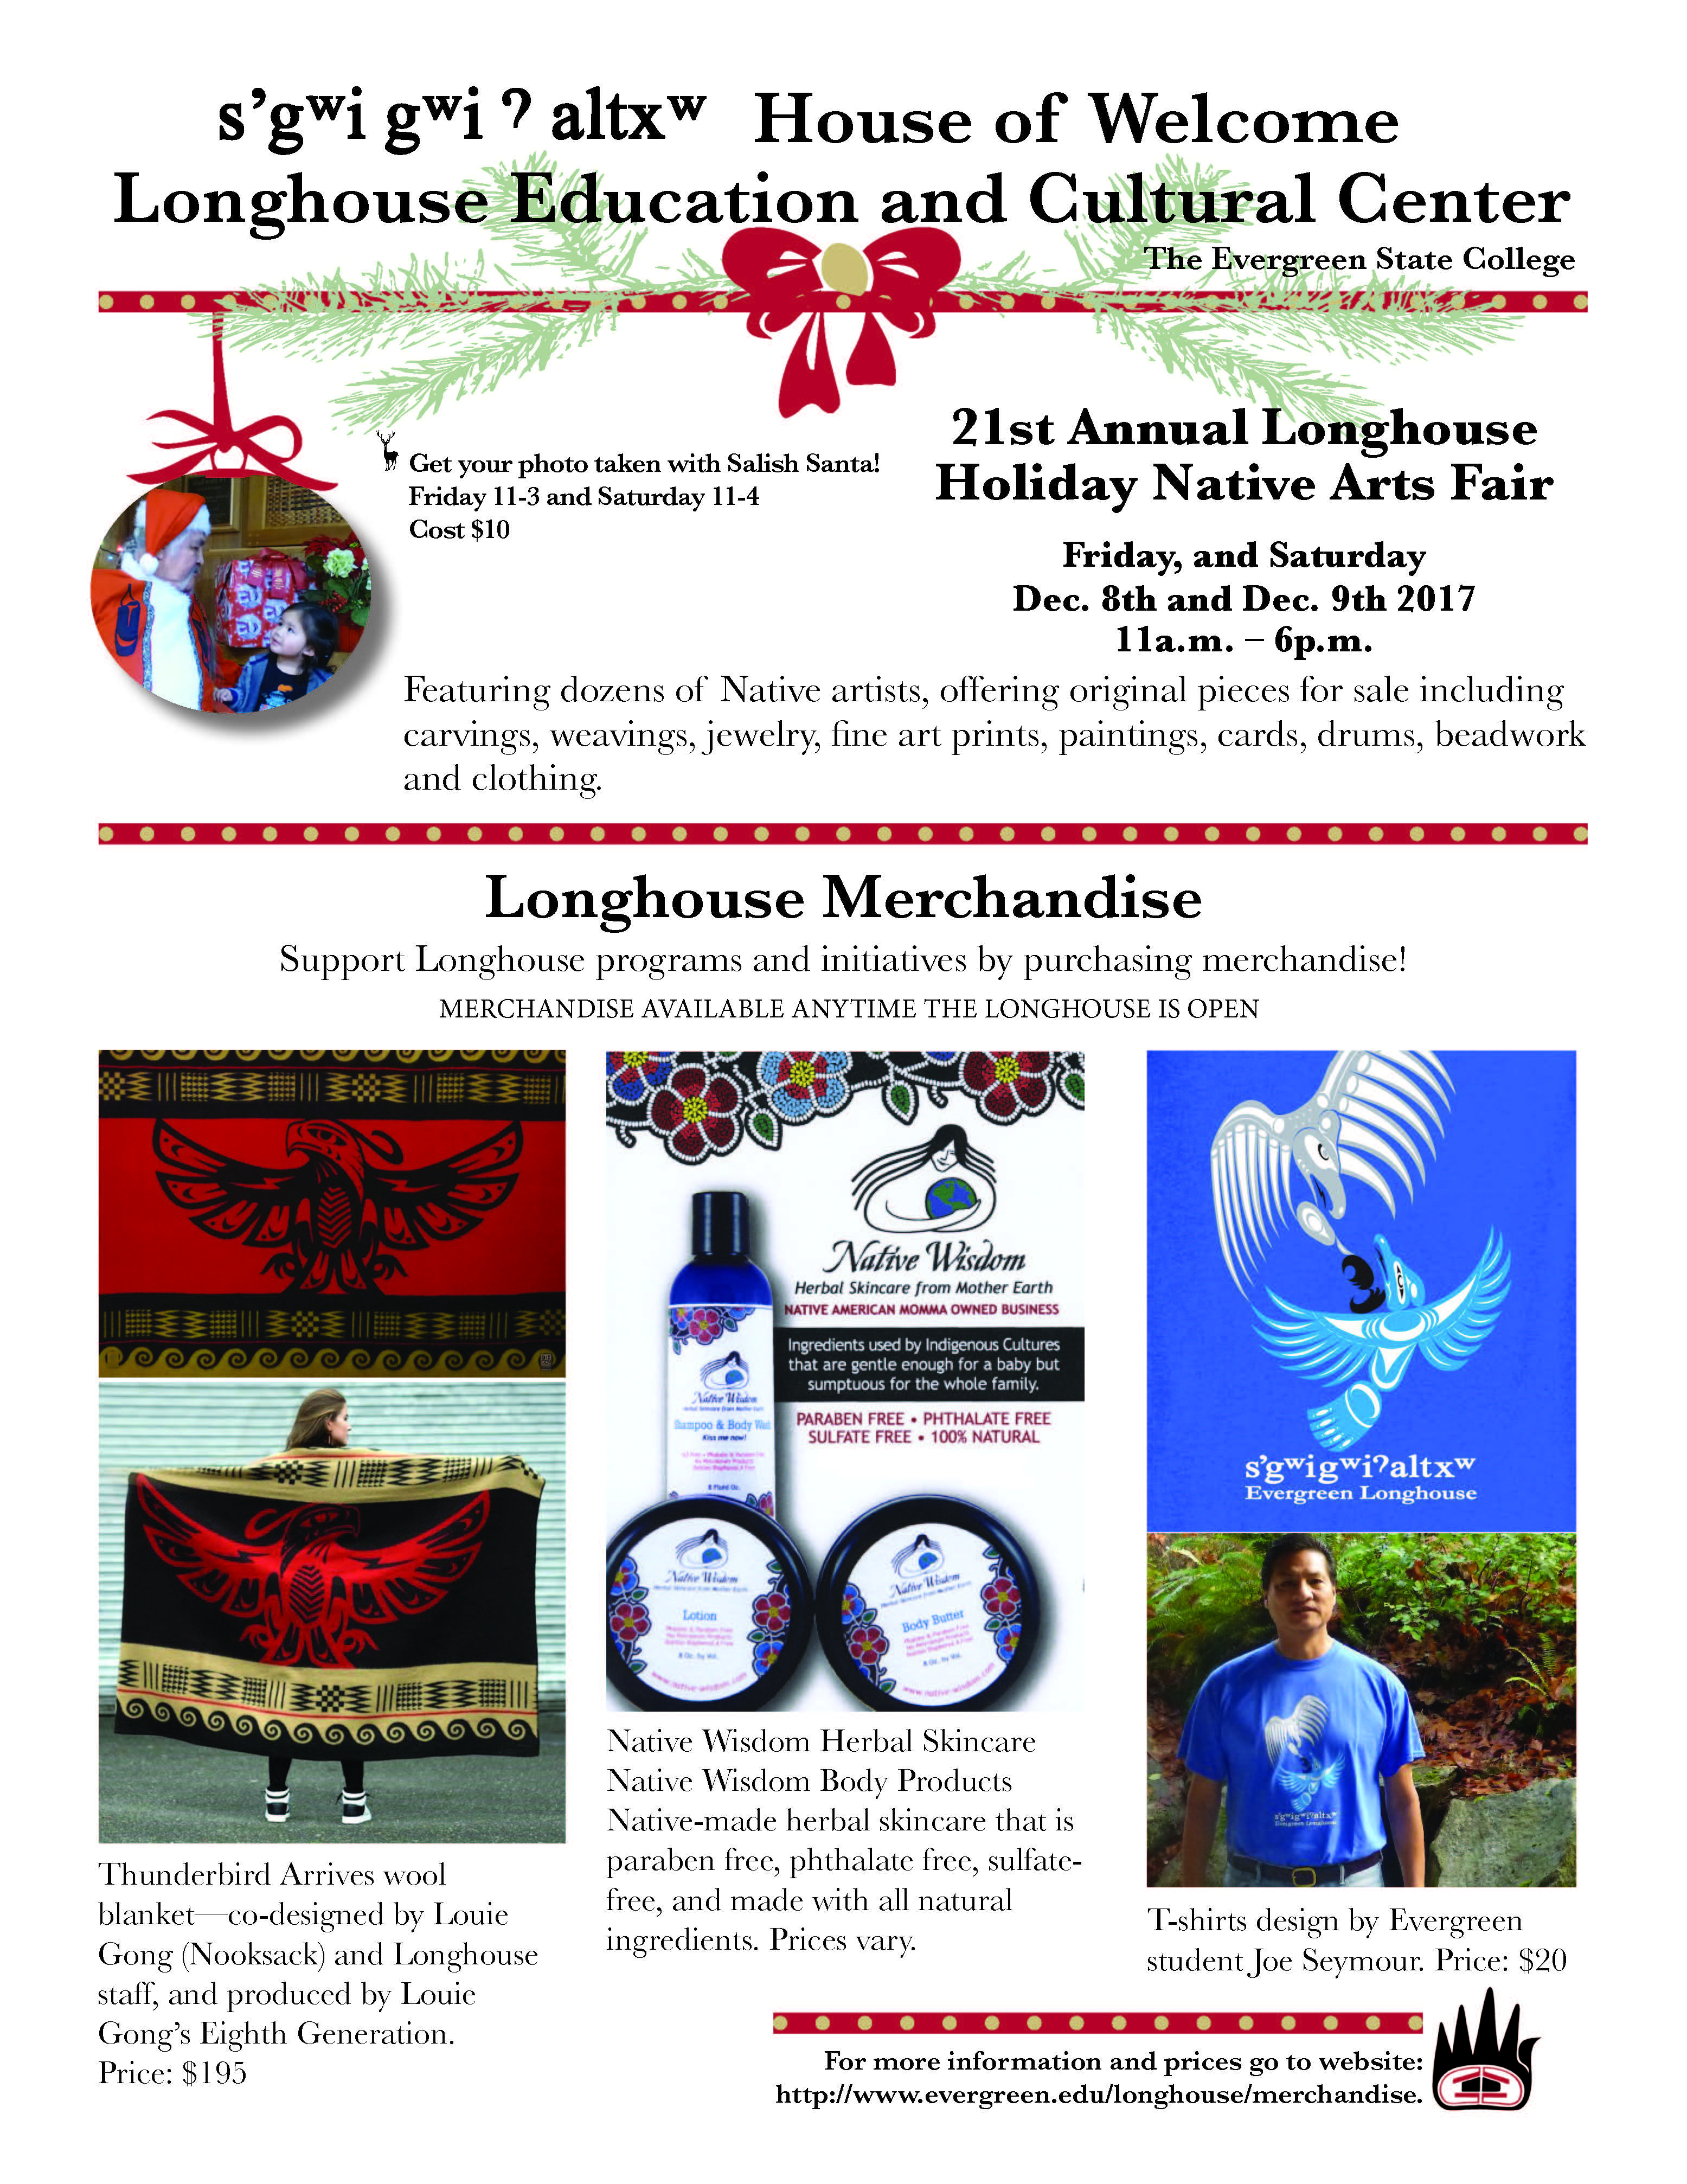 21st Annual Longhouse Holiday Native Arts Fair: December 8 & 9, 2017. Longhouse merchandise: Thunderbird Arrive Blanket, Native Wisdom Herbal Skincare, & T-Shirts by Joe Seymour.